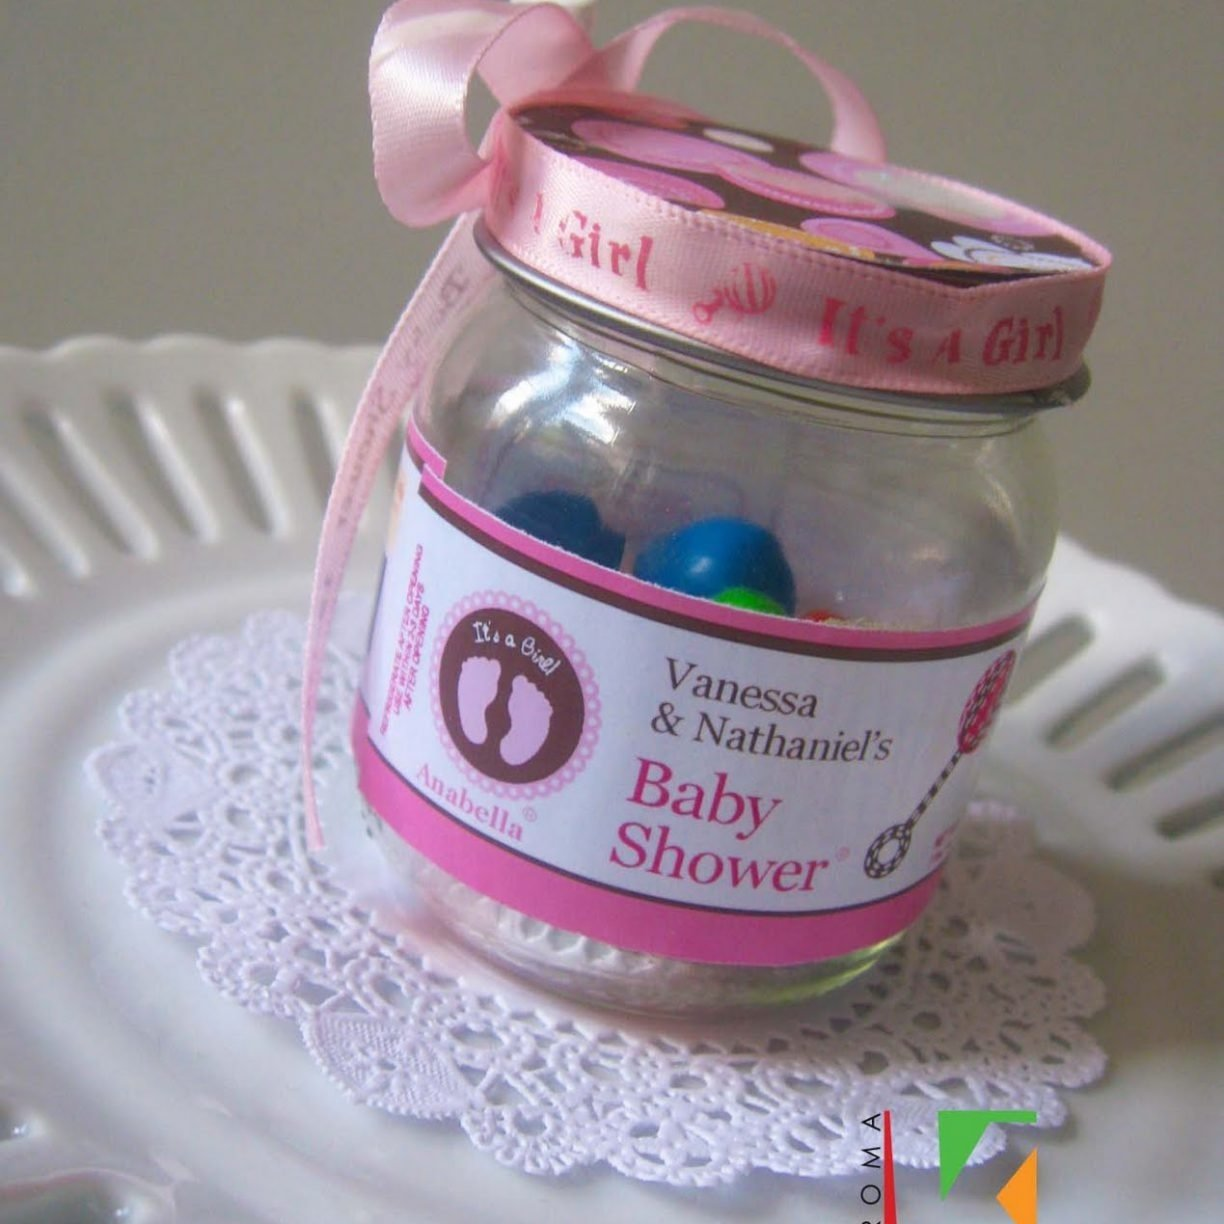 10 Attractive Do It Yourself Baby Shower Favors Ideas ideas do it yourself baby shower favors easy party girl stock photos 2020